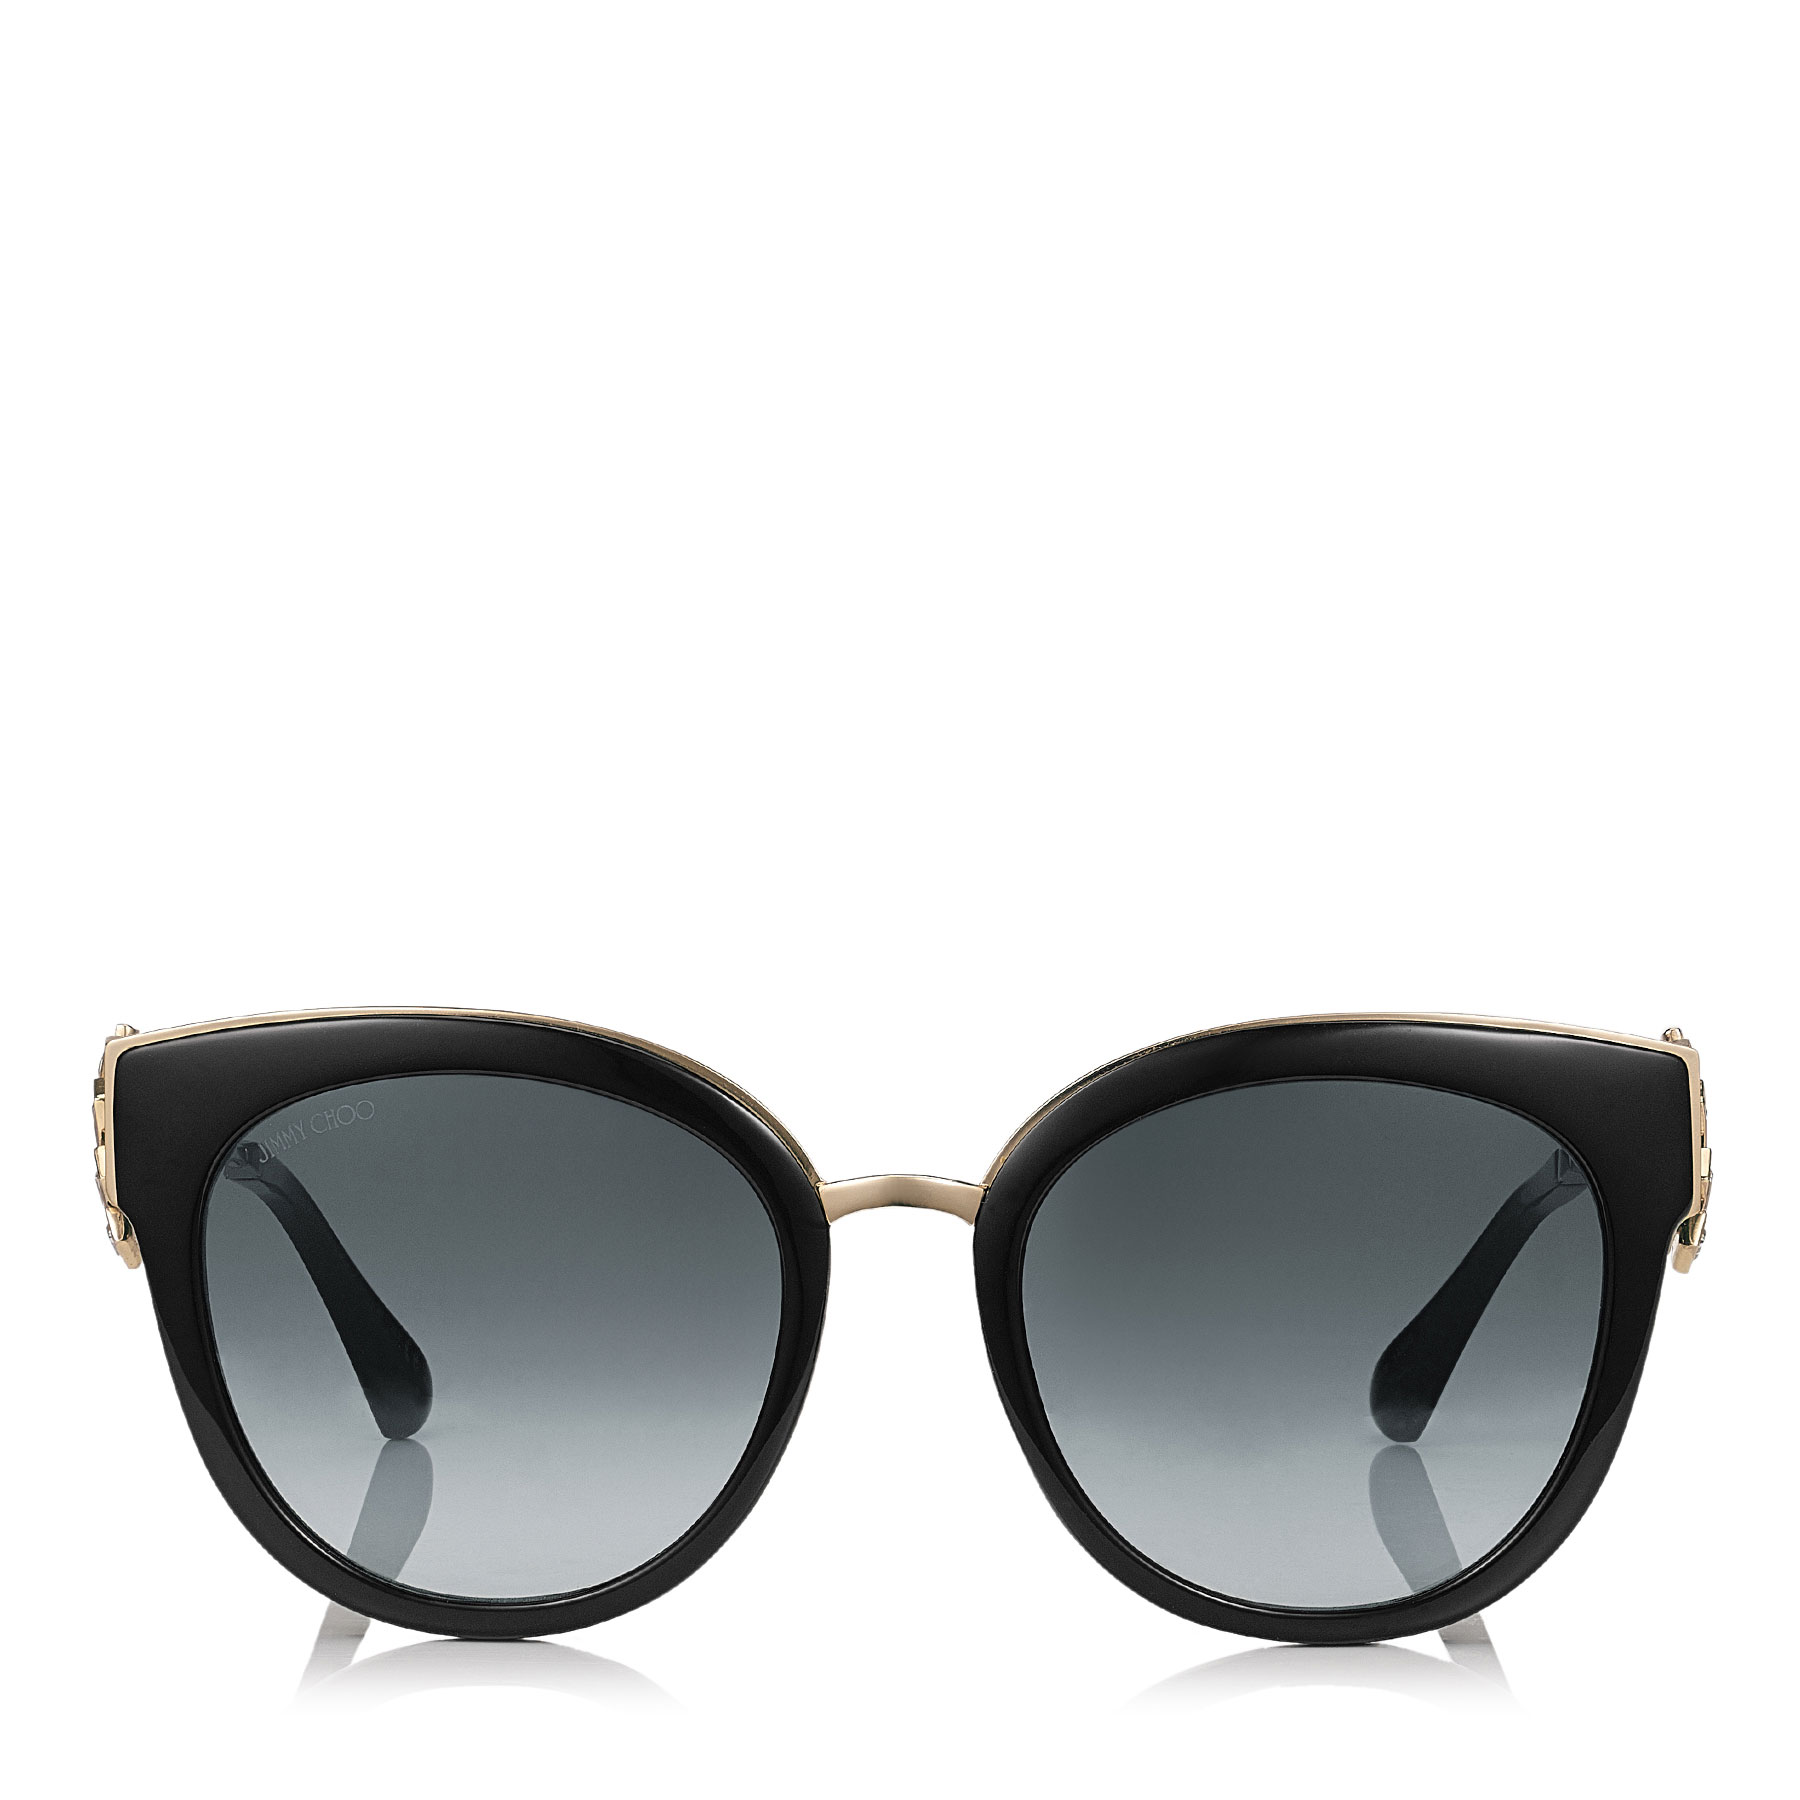 JADE/S 53 Black and Gold Oversized Sunglasses with Clip On Earrings